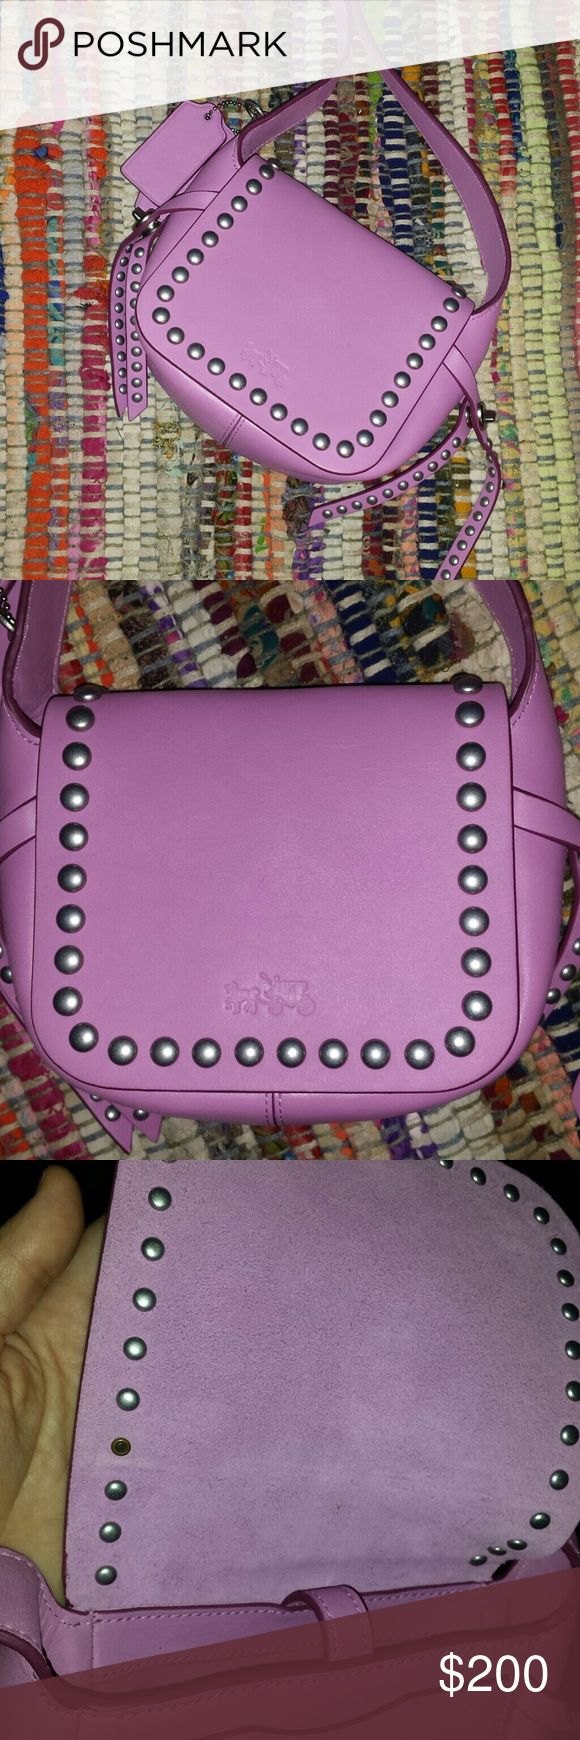 """COACH - Rivet Dakotah studded crossbody in Puce . COACH - Rivet Dakotah studded crossbody in Puce 14 calf leather crossbody bag.  No tags. Authentic. Like new condition.  No dustbag . No scratches or scuffs.  Only defect is the back of stud missing (see photo 3 ) Smoke free home.  Bag depth-2.25"""" Bag length-7"""" Strap Drop -23"""" Bag height 5.5"""" No lowballs. Coach Bags Crossbody Bags"""